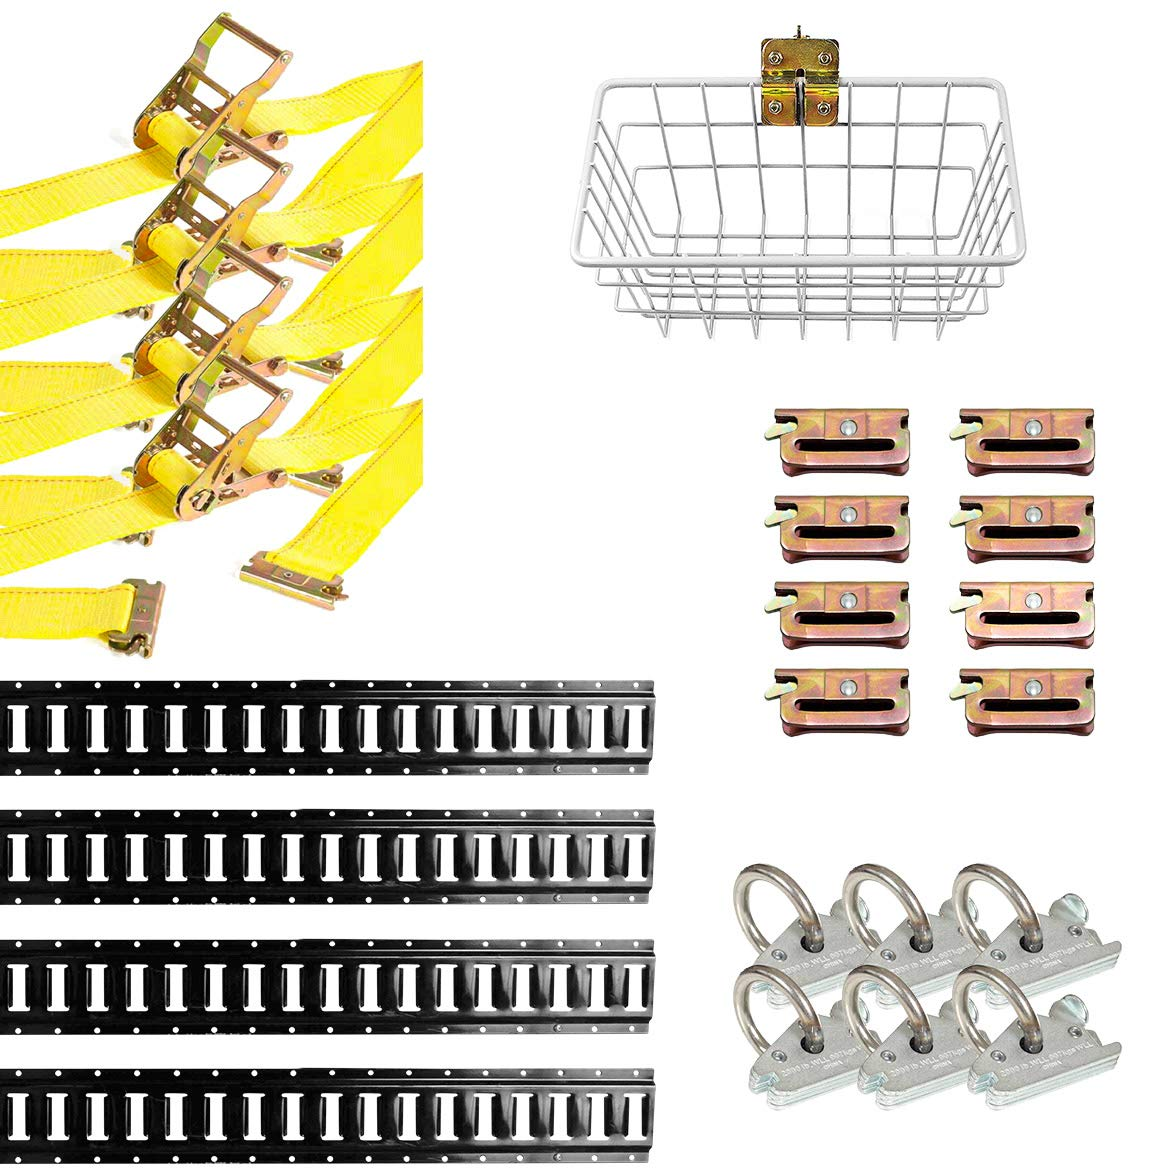 E-Track Rails NOT Included DC Cargo Mall E Track Tie-Down Kit 8 Pieces: E-Track Accessories Includes 12 ft E Track Straps and O-Rings